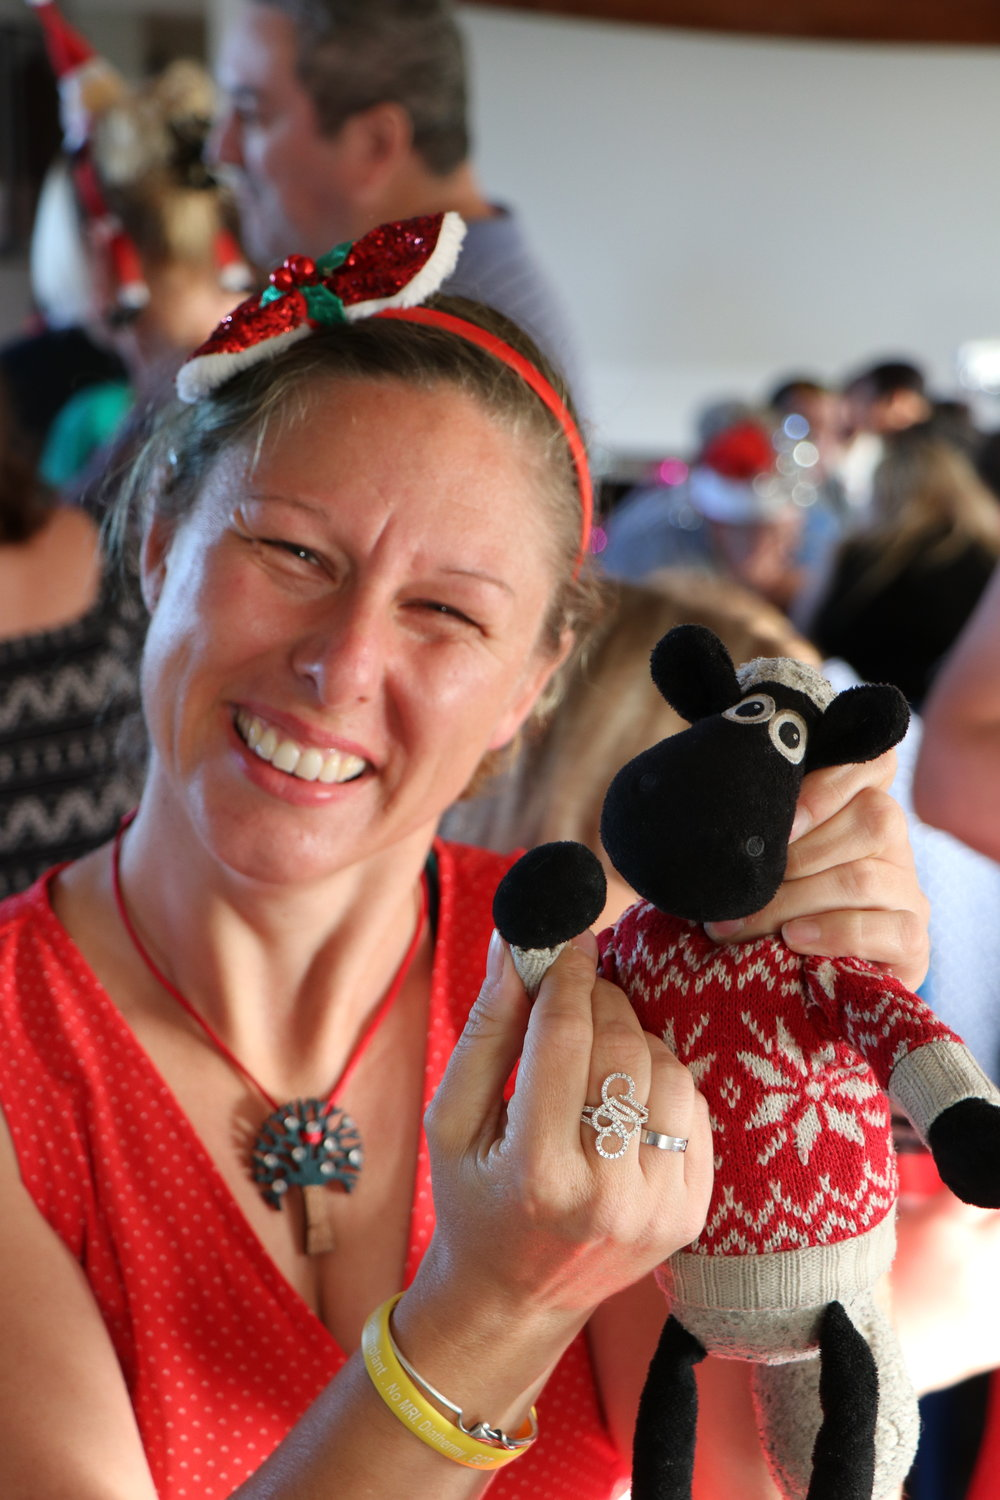 Photo of woman with toy sheep in her hands smiling.